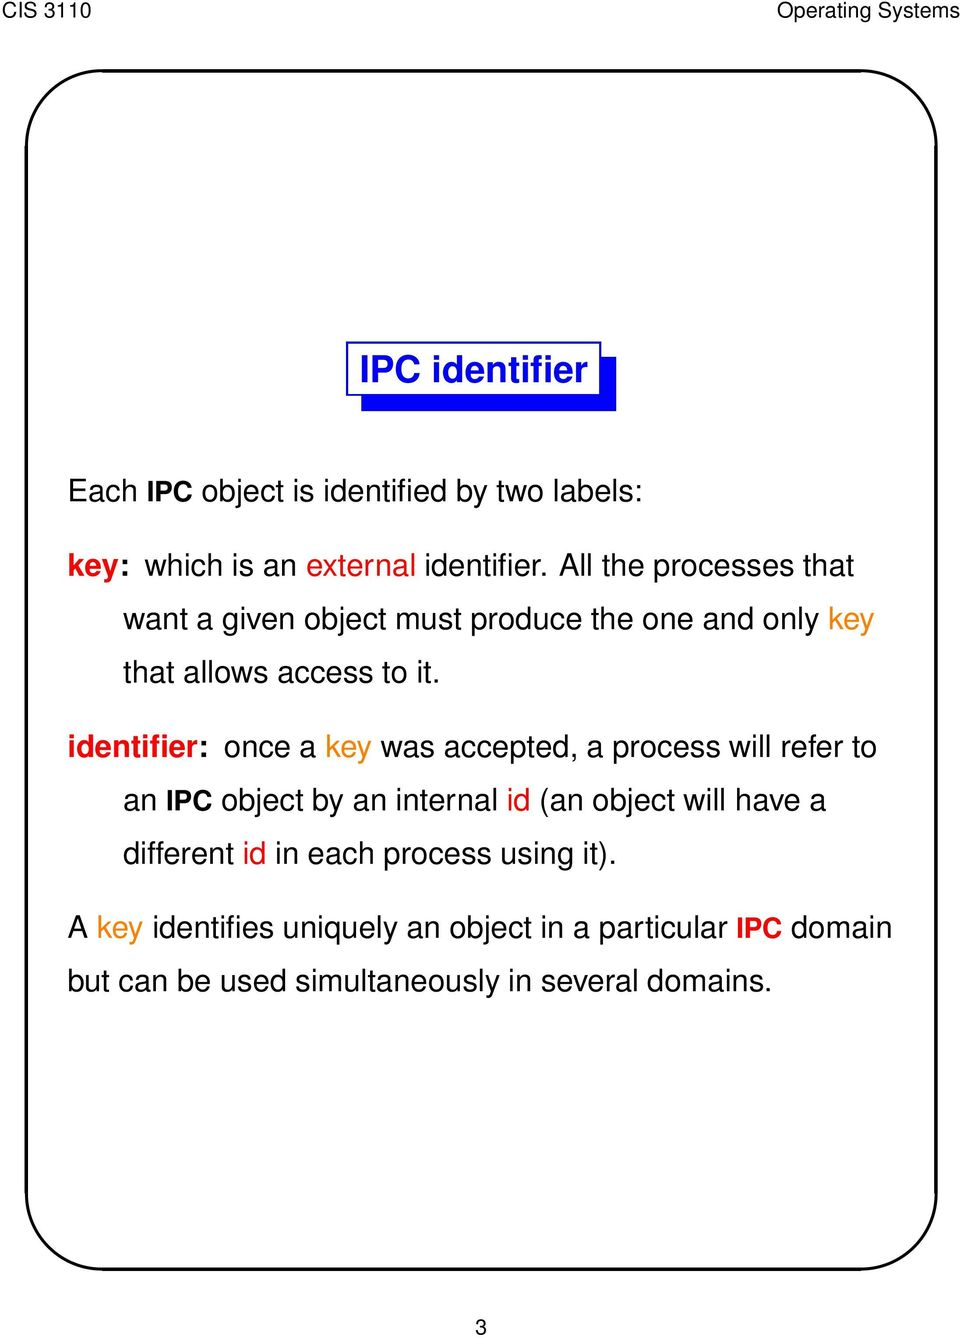 identifier: once a key was accepted, a process will refer to an IPC object by an internal id (an object will have a